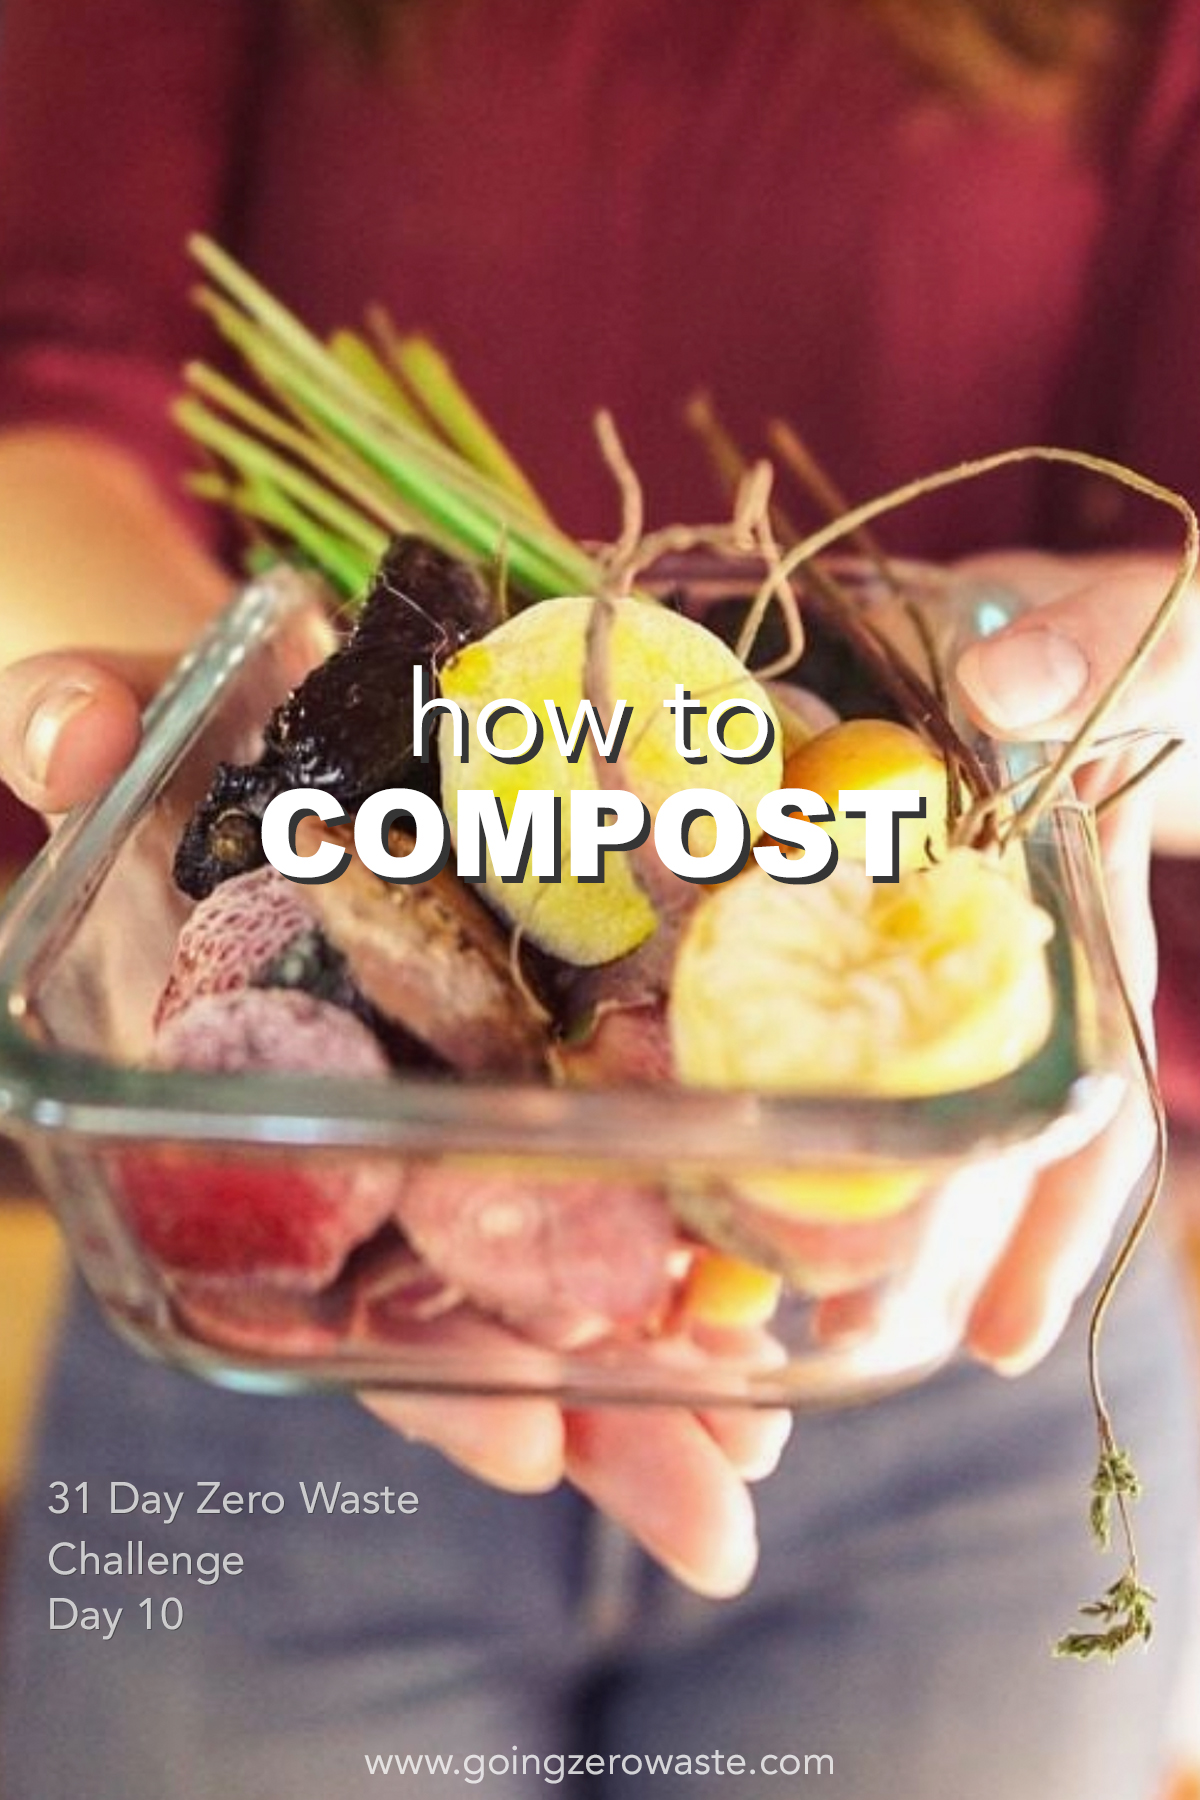 How to compost day 10 of the zero waste challenge from www.goingzerowaste.com #compost #zerowastechallenge #ecofriendly #zerowaste